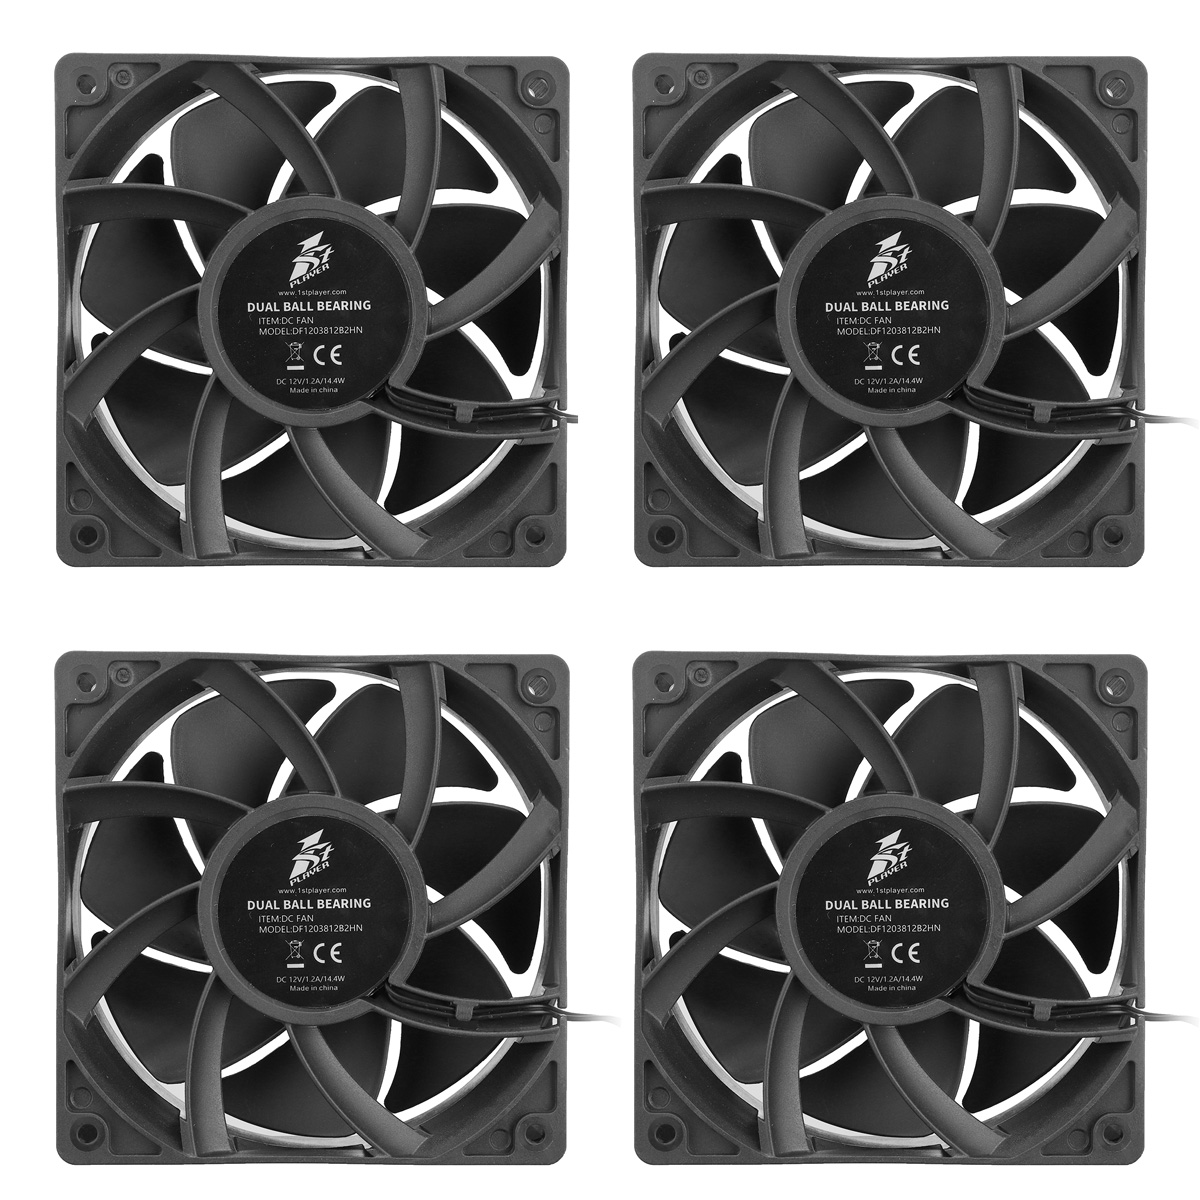 4pc 12V 12cm 4000RPM 4PIN Cooling Fan For Bitcoin Mining Cooling A Violent Fan Before And After The Mine Mining Case4pc 12V 12cm 4000RPM 4PIN Cooling Fan For Bitcoin Mining Cooling A Violent Fan Before And After The Mine Mining Case